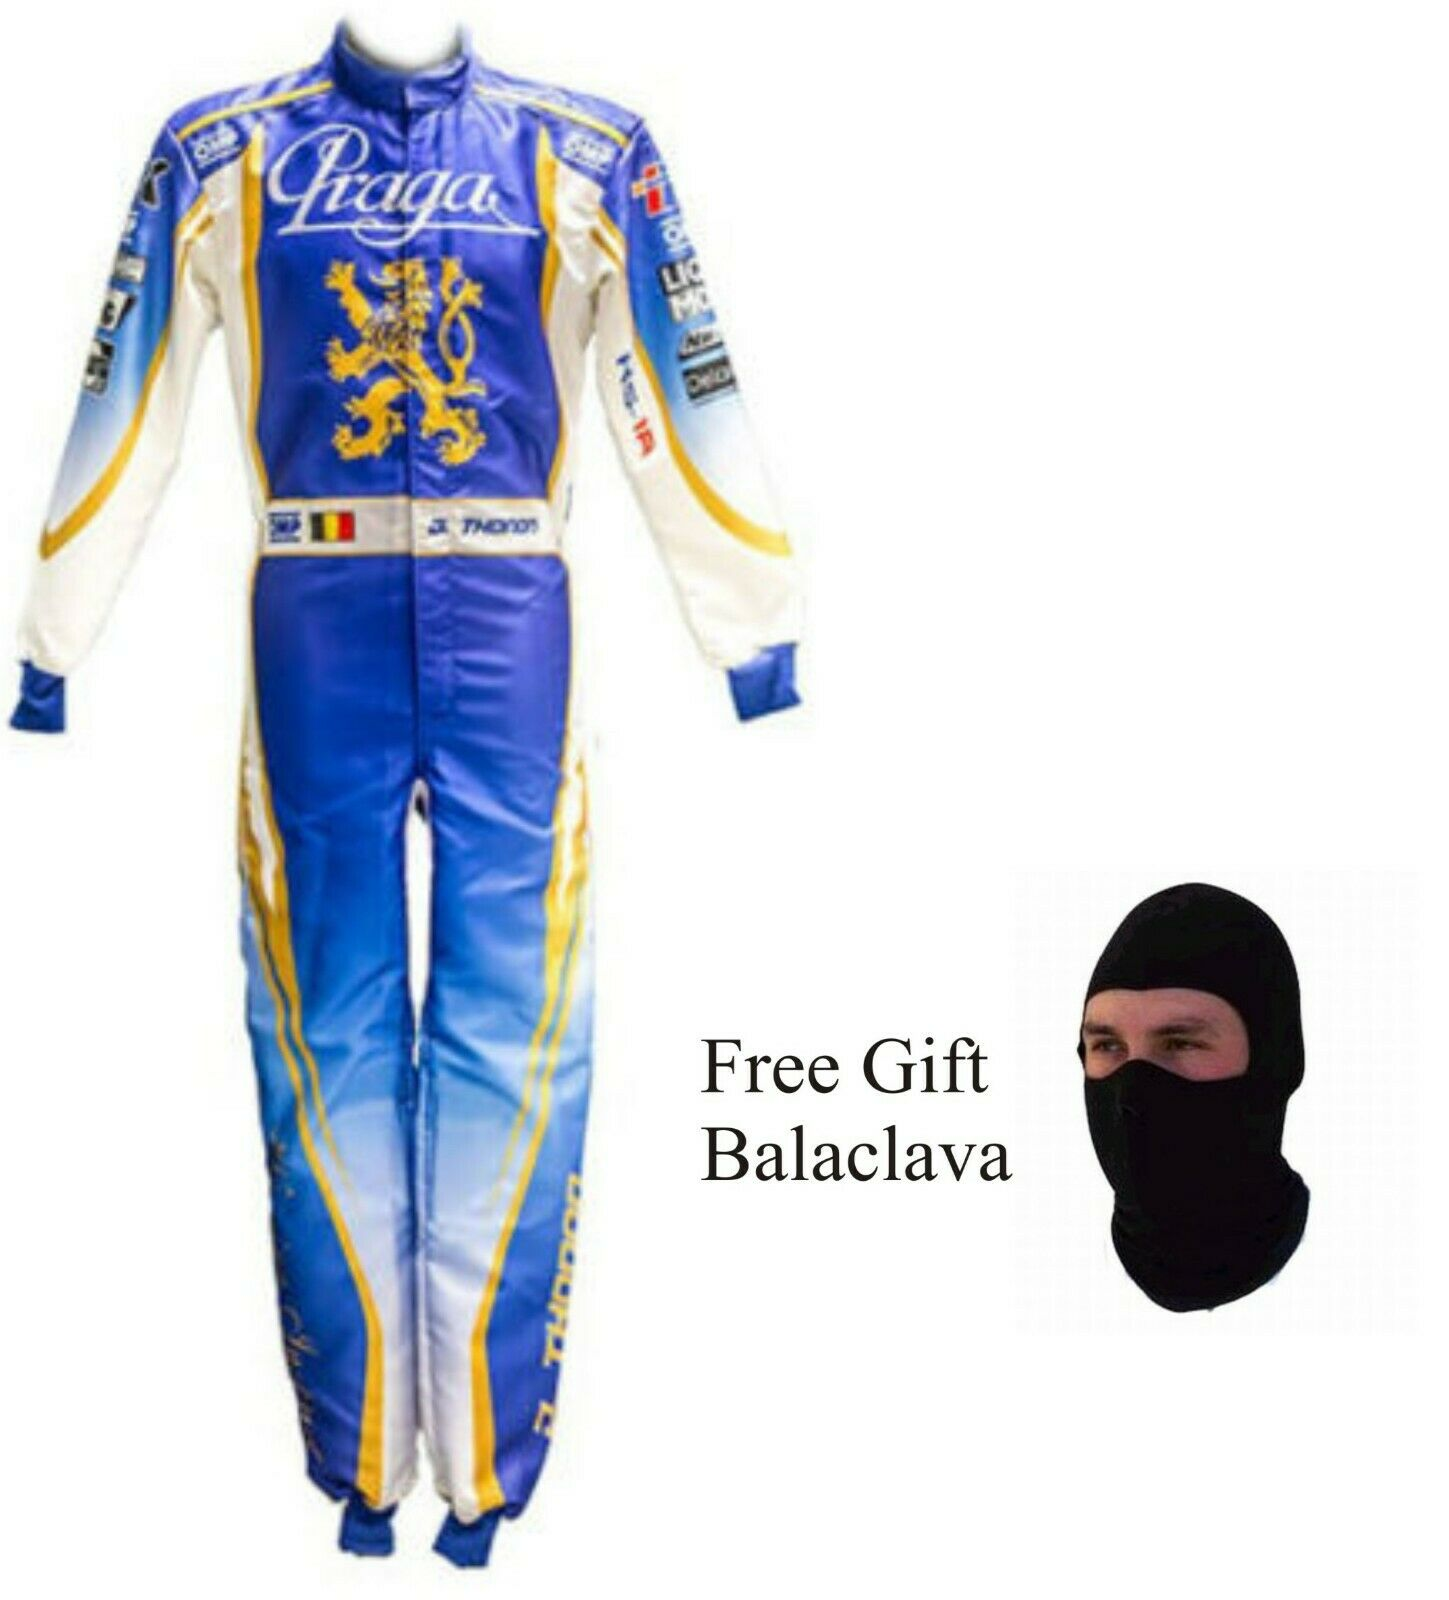 NEW PRAGA Karting Suit SUBLIMATION CIK FIA Level 2 (Free gifts included)